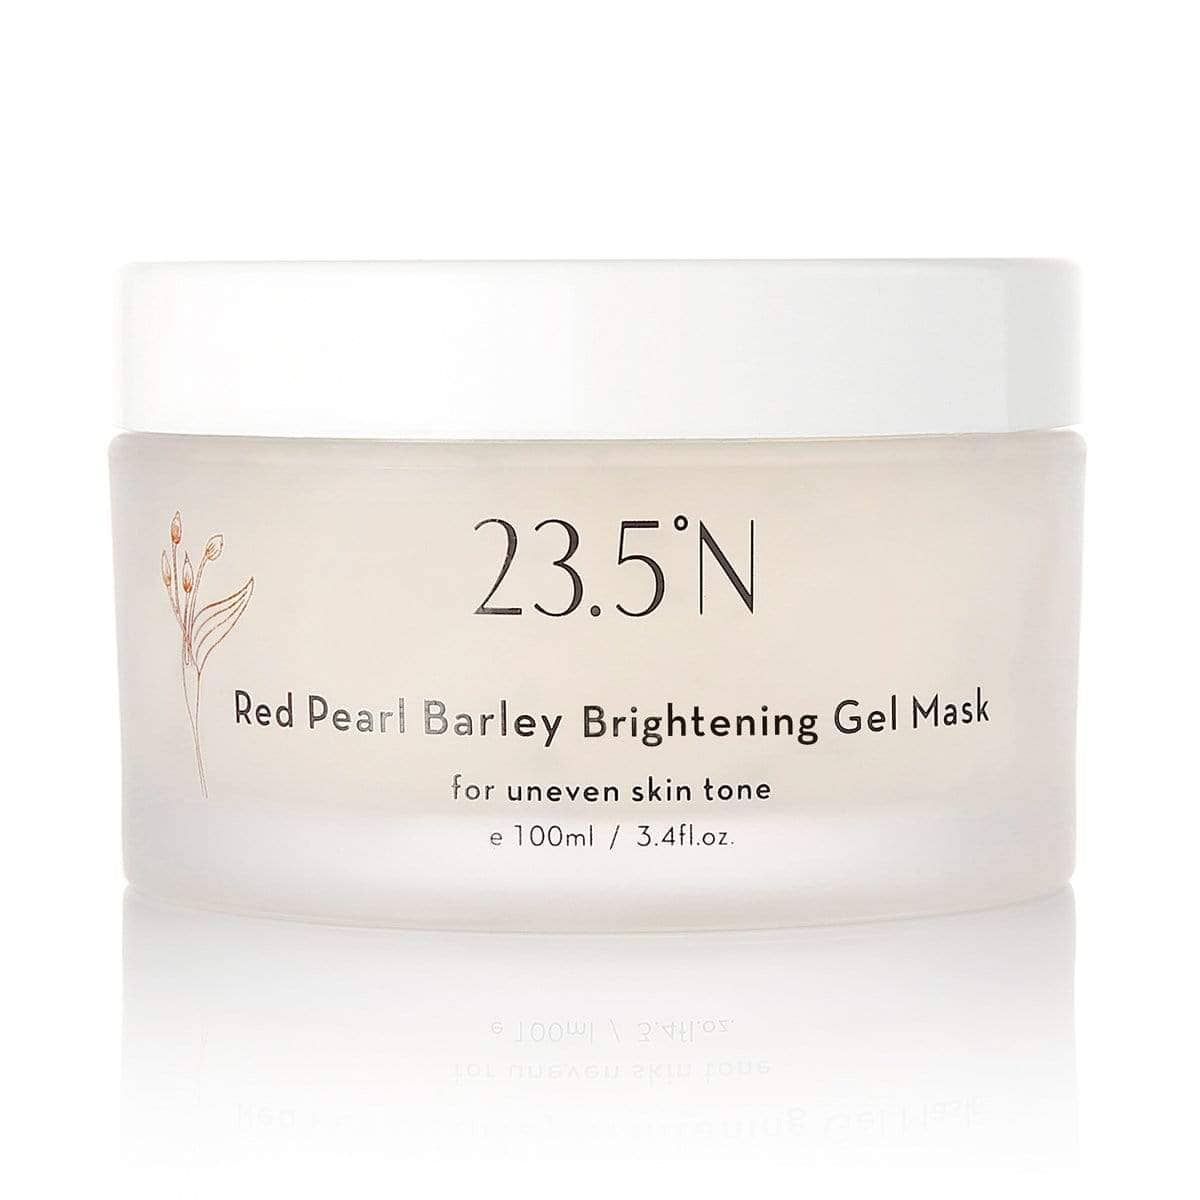 23.5N Red Pearl Barley Brightening Gel Mask